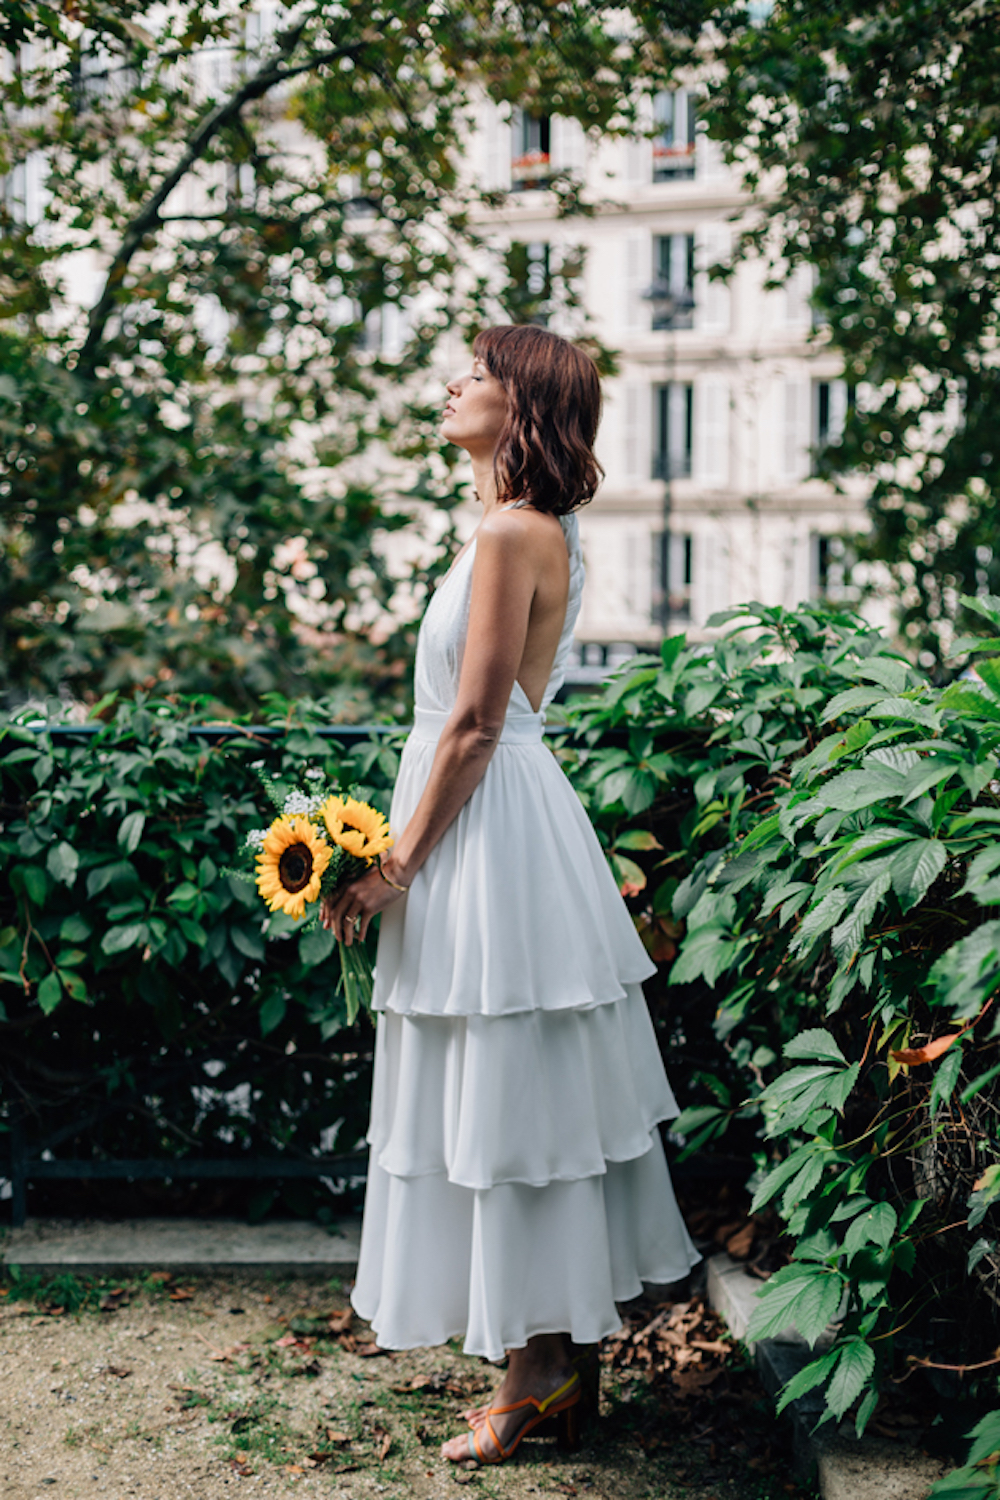 parisian-inspired-blog-mariagepierreatelier-photographe-mariage-paris-120.jpg